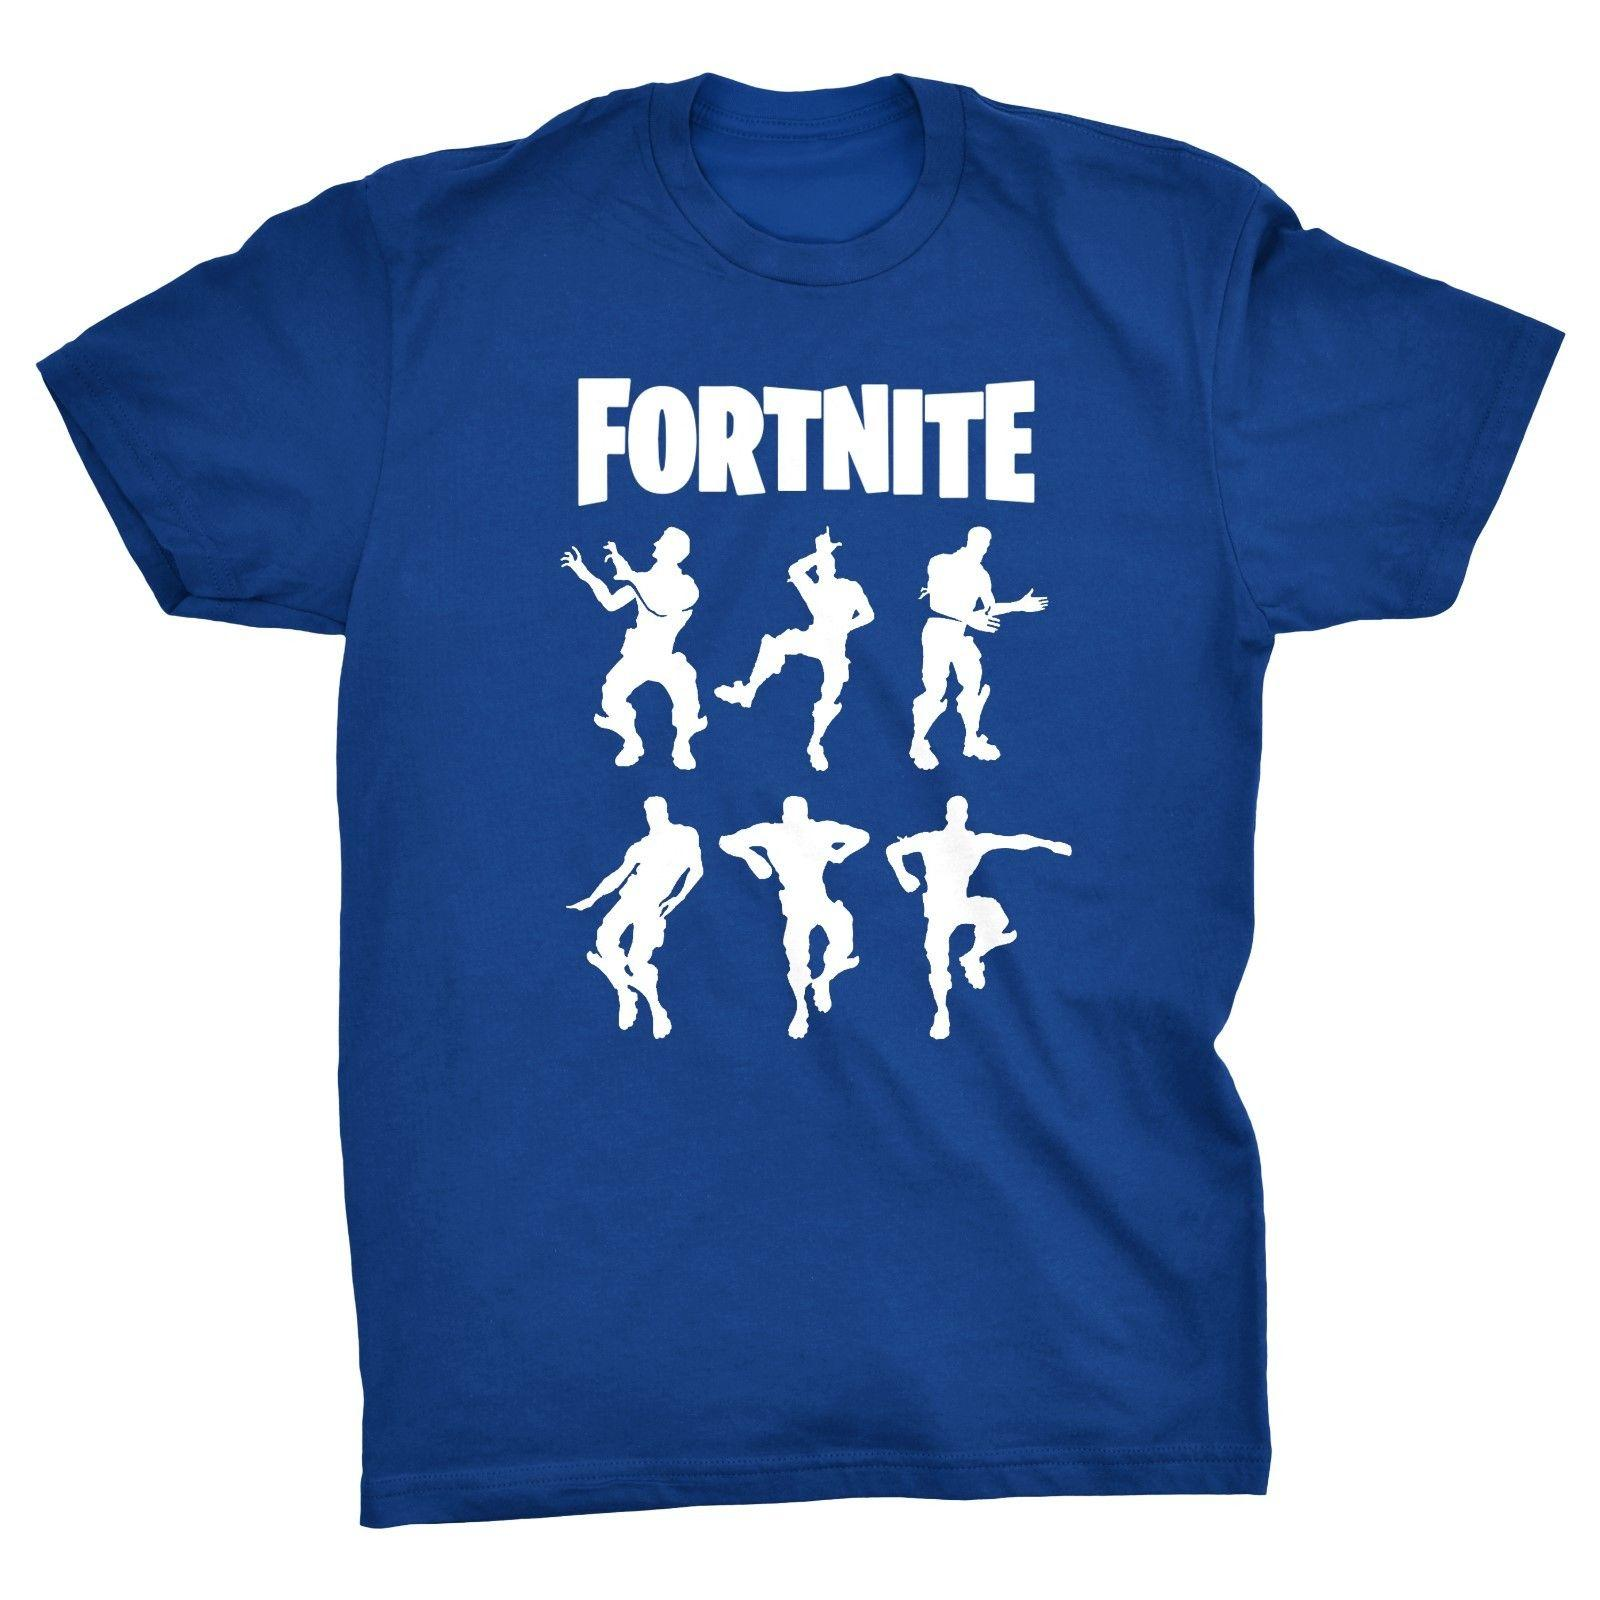 eef14b2b8 Fortnite Celebrations T Shirt Adult Child Kids Gaming Dance Dab Flossing  Floss Size Discout Hot New Tshirt Top T Shirt Men Wom Coolest Tees Awesome  Tee ...